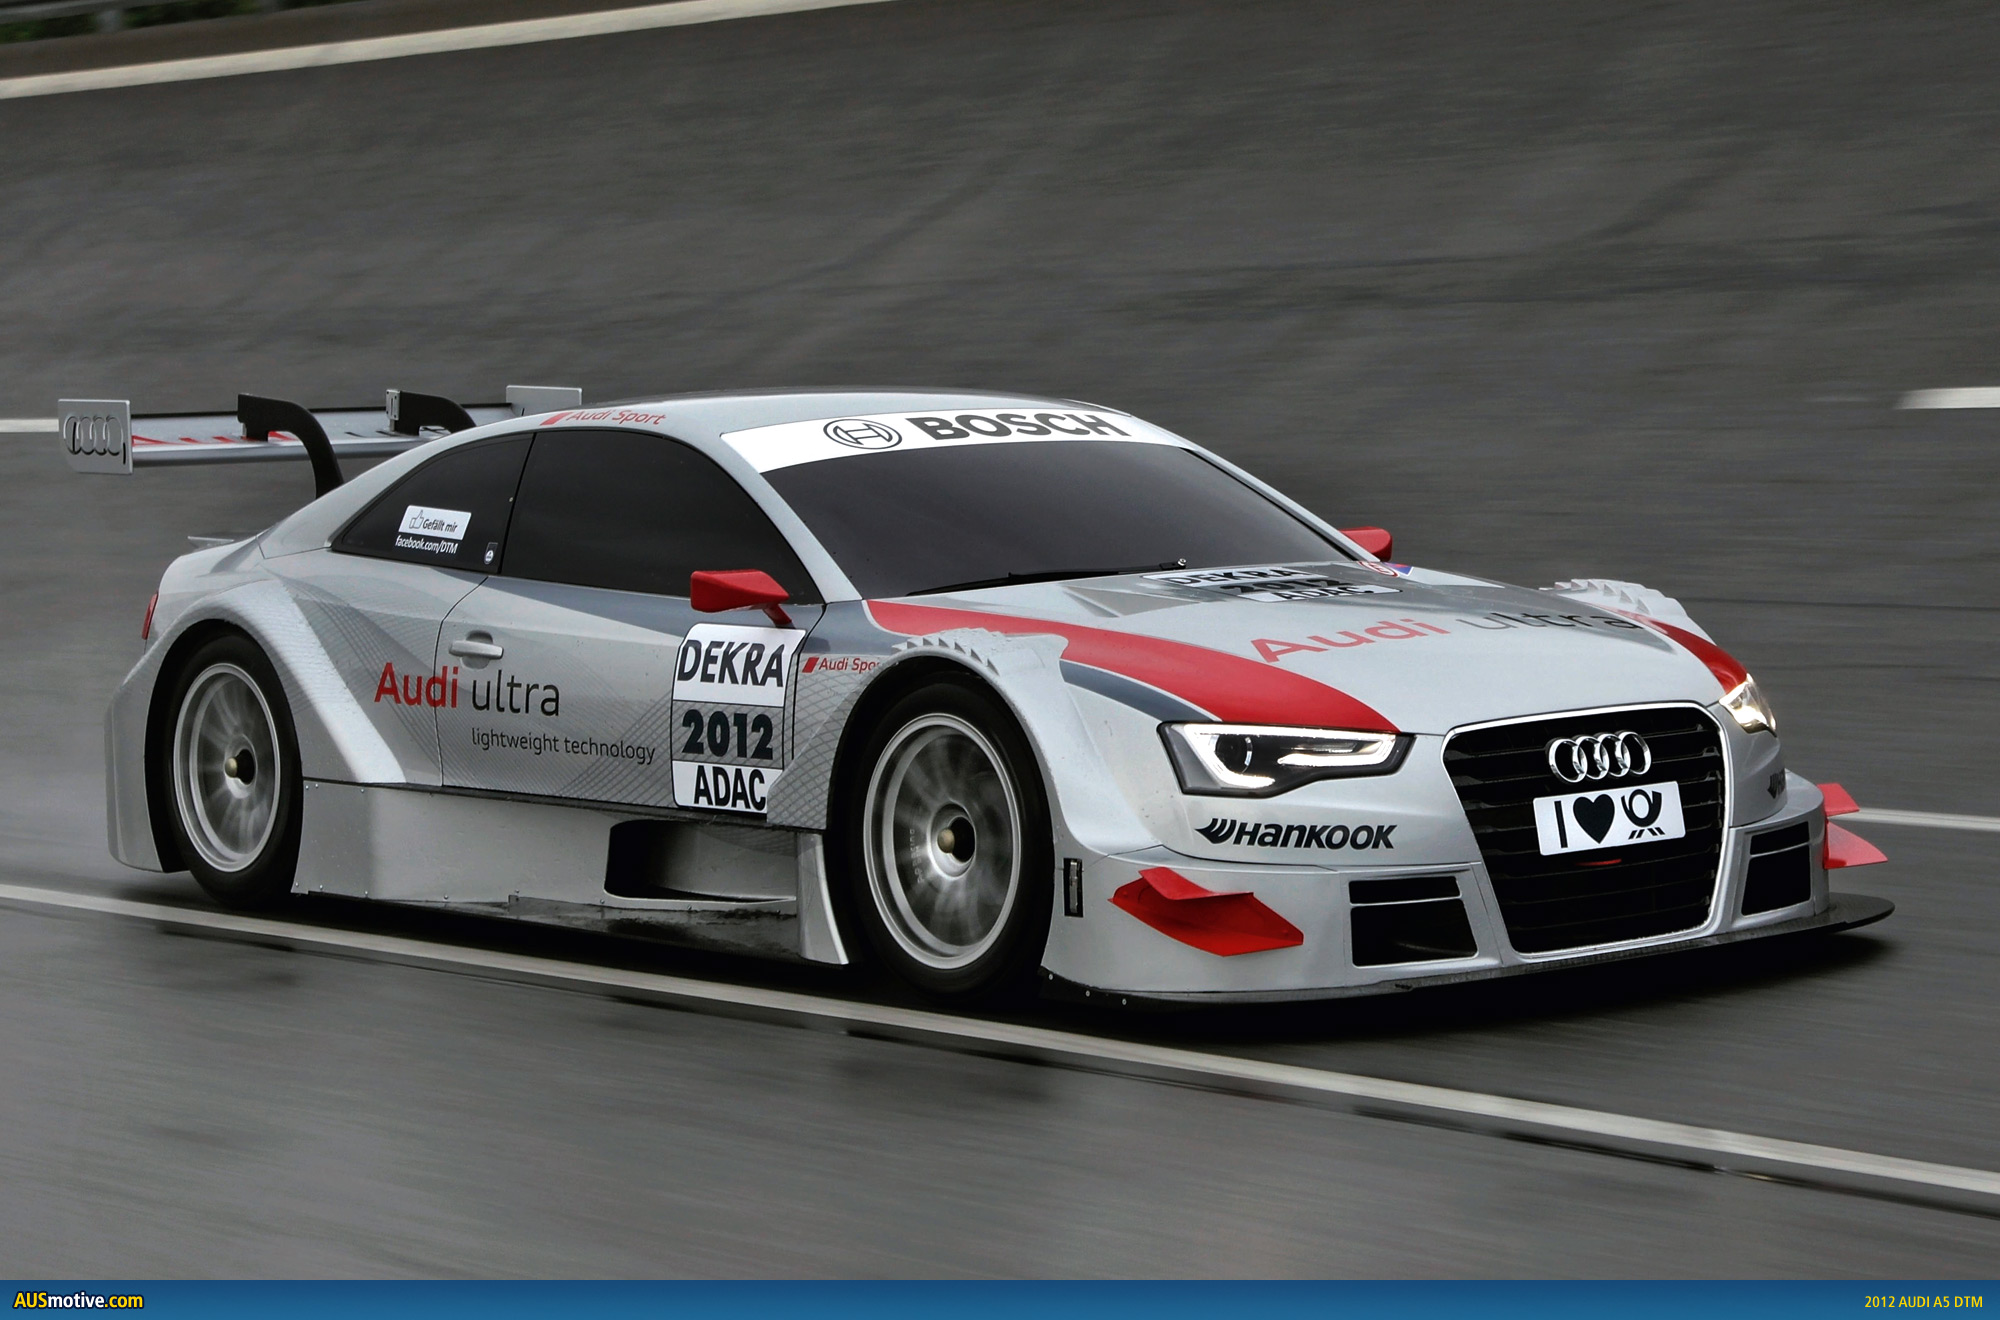 a5 dtm concept pre facelift audi a5 forum audi s5 forum. Black Bedroom Furniture Sets. Home Design Ideas